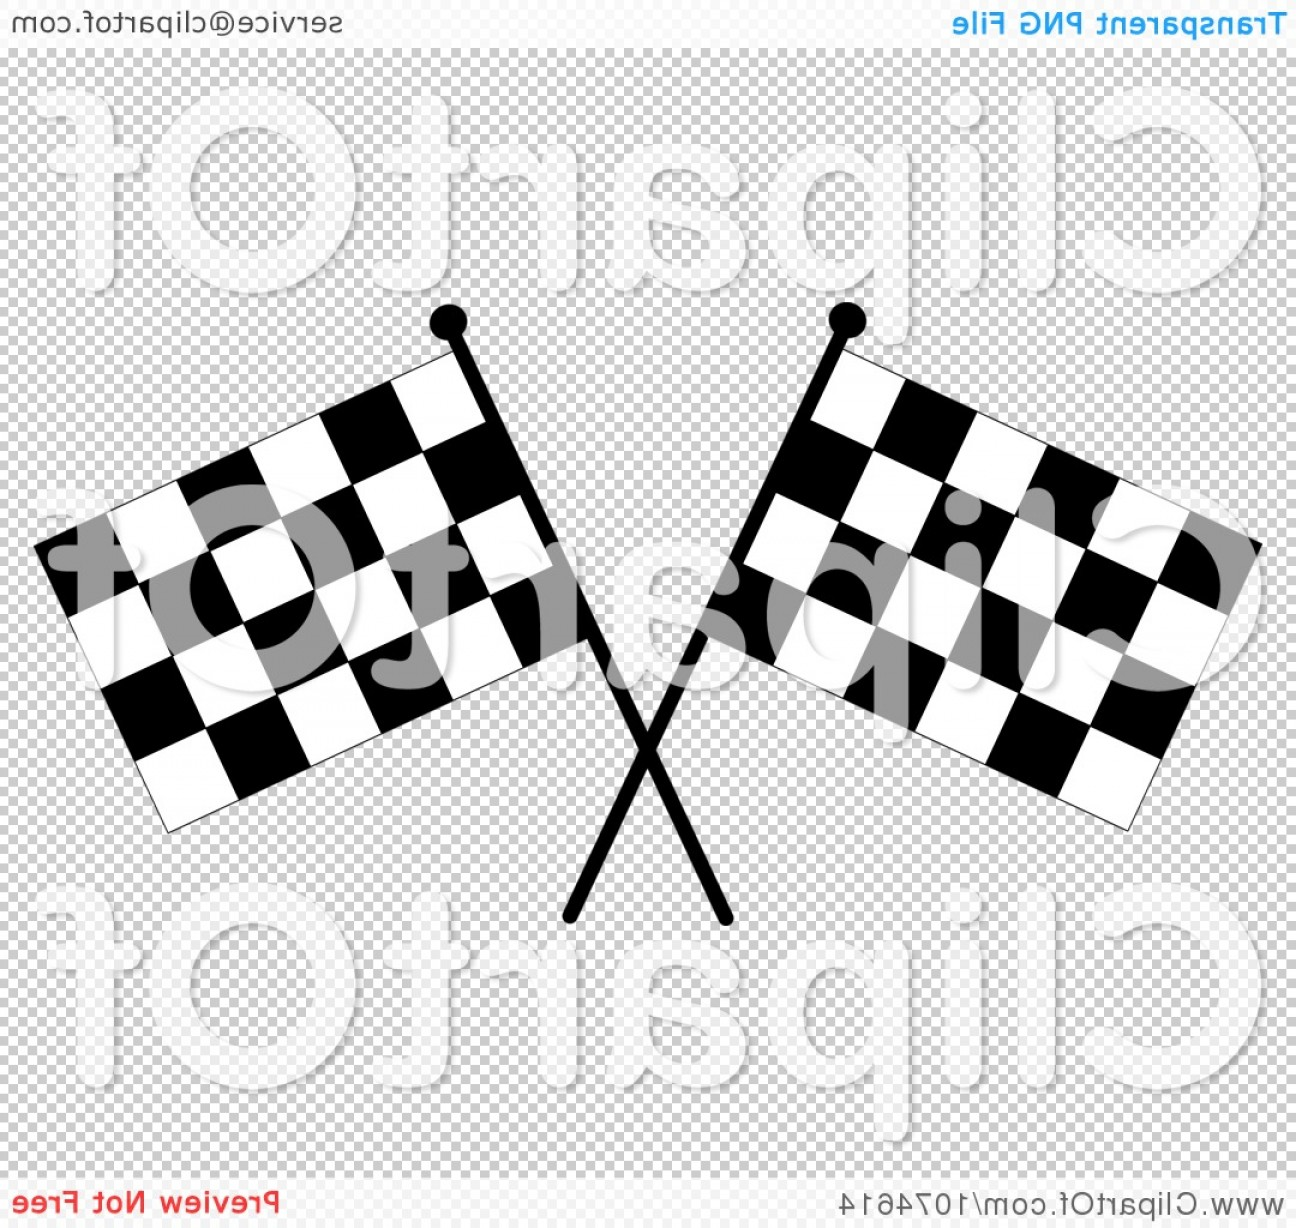 Checkered Flag Background Vector: Two Crossed Checkered Racing Flags